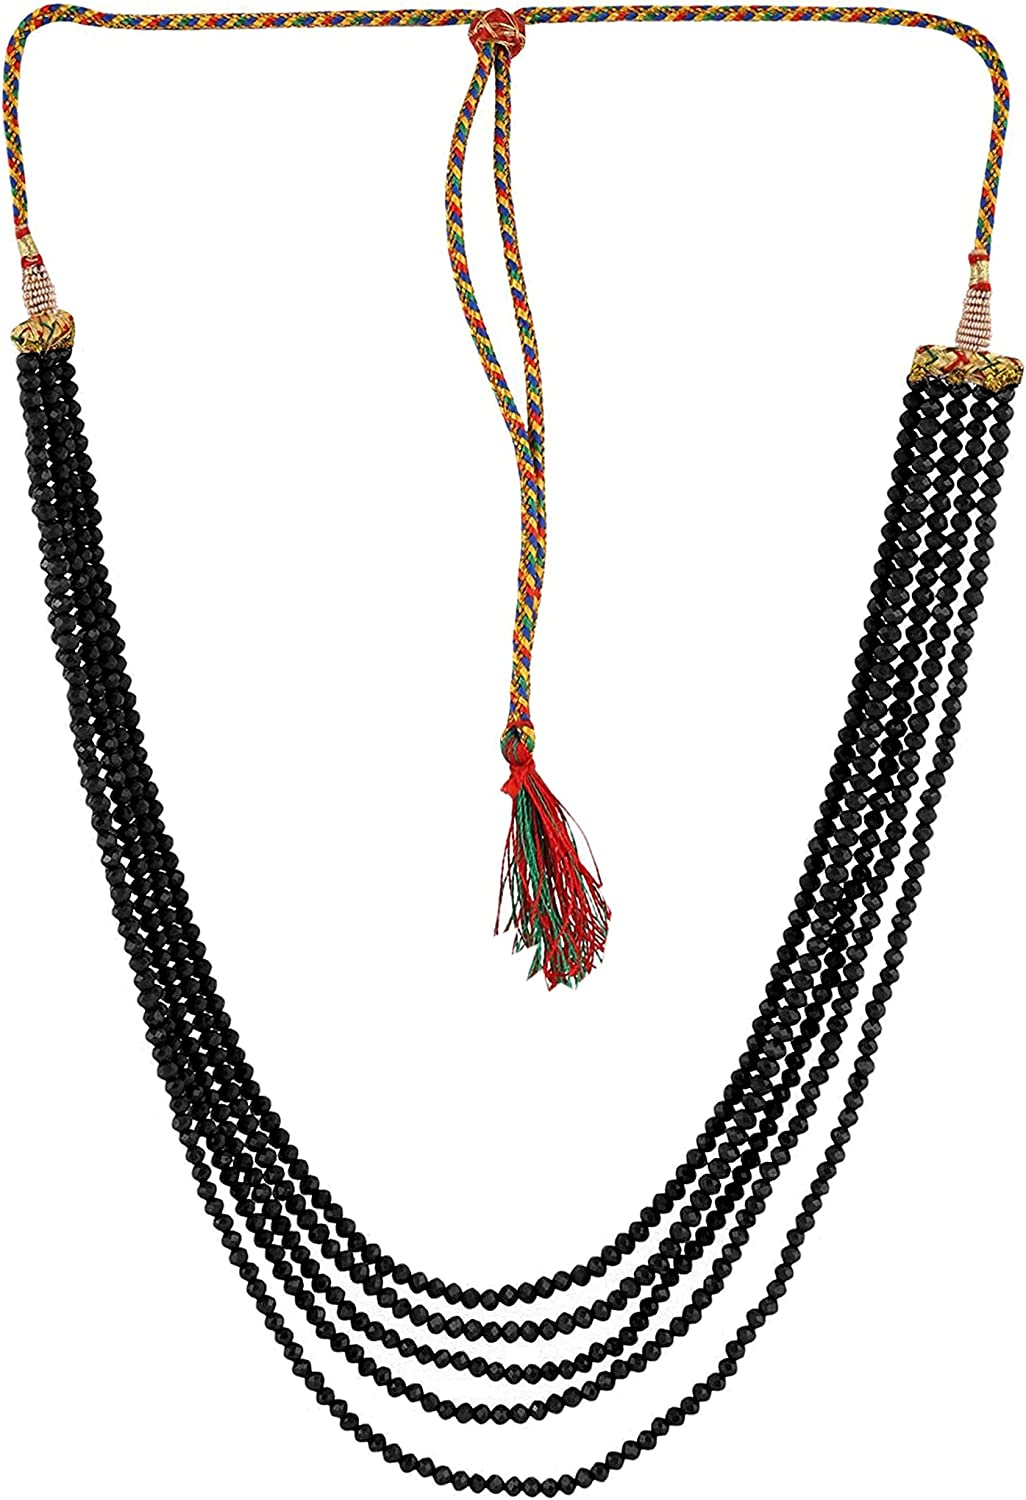 Sansar India Five Layer Beads Multistrand Indian Necklace Jewelry for Girls and Women